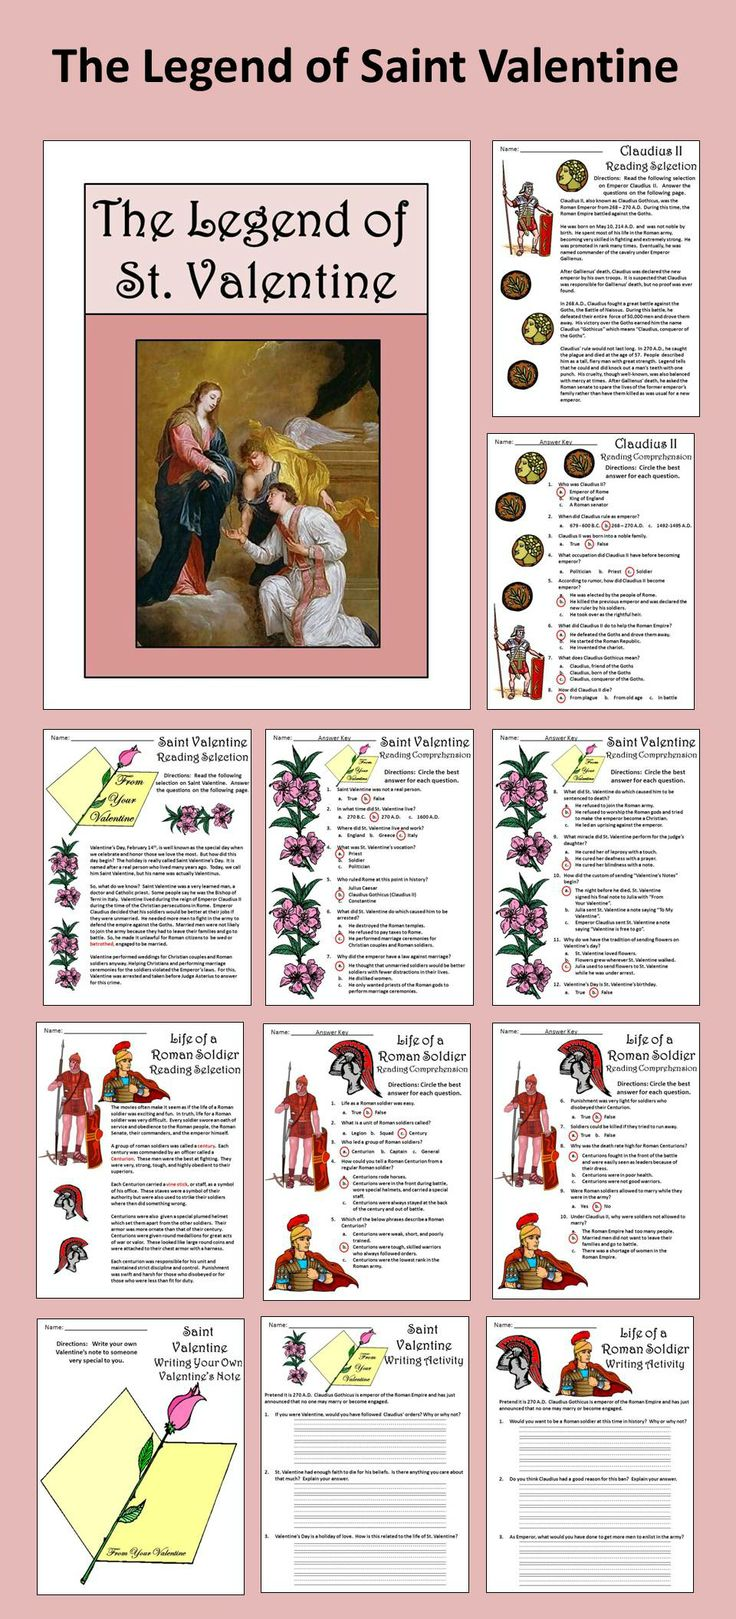 Legend of St. Valentine Activity Packet: The story of the Roman Catholic priest, St. Valentine, and Roman Emperor, Claudius Gothicus, who reigned from 268-270 A.D.  Contents include: * Reading Selections & Quizzes - St. Valentine, Claudius II, Life of a Roman Soldier * St. Valentine Writing Activity * Valentine Note Creative Writing Activity * Roman Soldier Writing Activity * Centurion Helmet Craft * Valentine's Mitre Craft #Valentines #Day #Activities #Reading #Teacherspayteachers